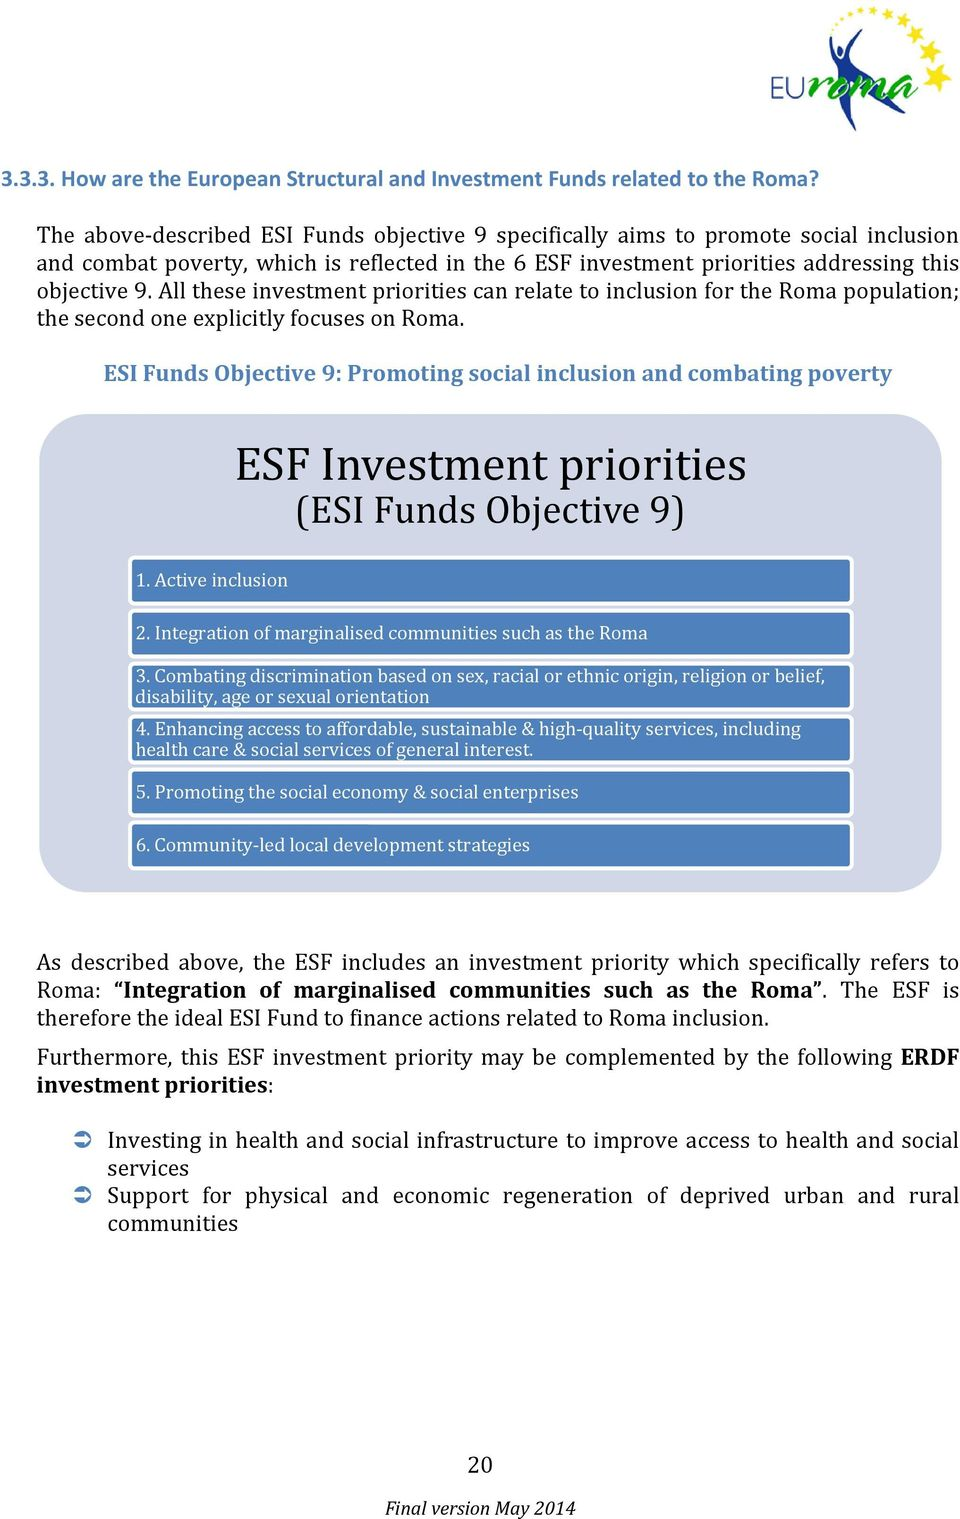 All these investment priorities can relate to inclusion for the Roma population; the second one explicitly focuses on Roma.